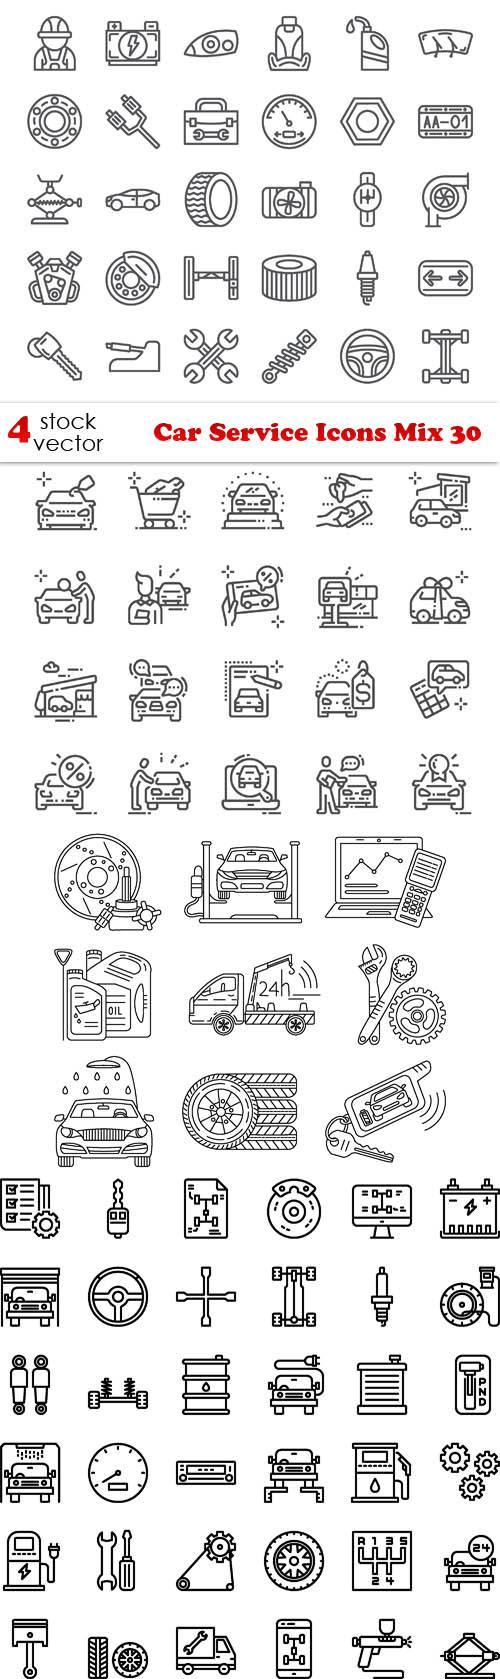 Car Service Icons Mix 30